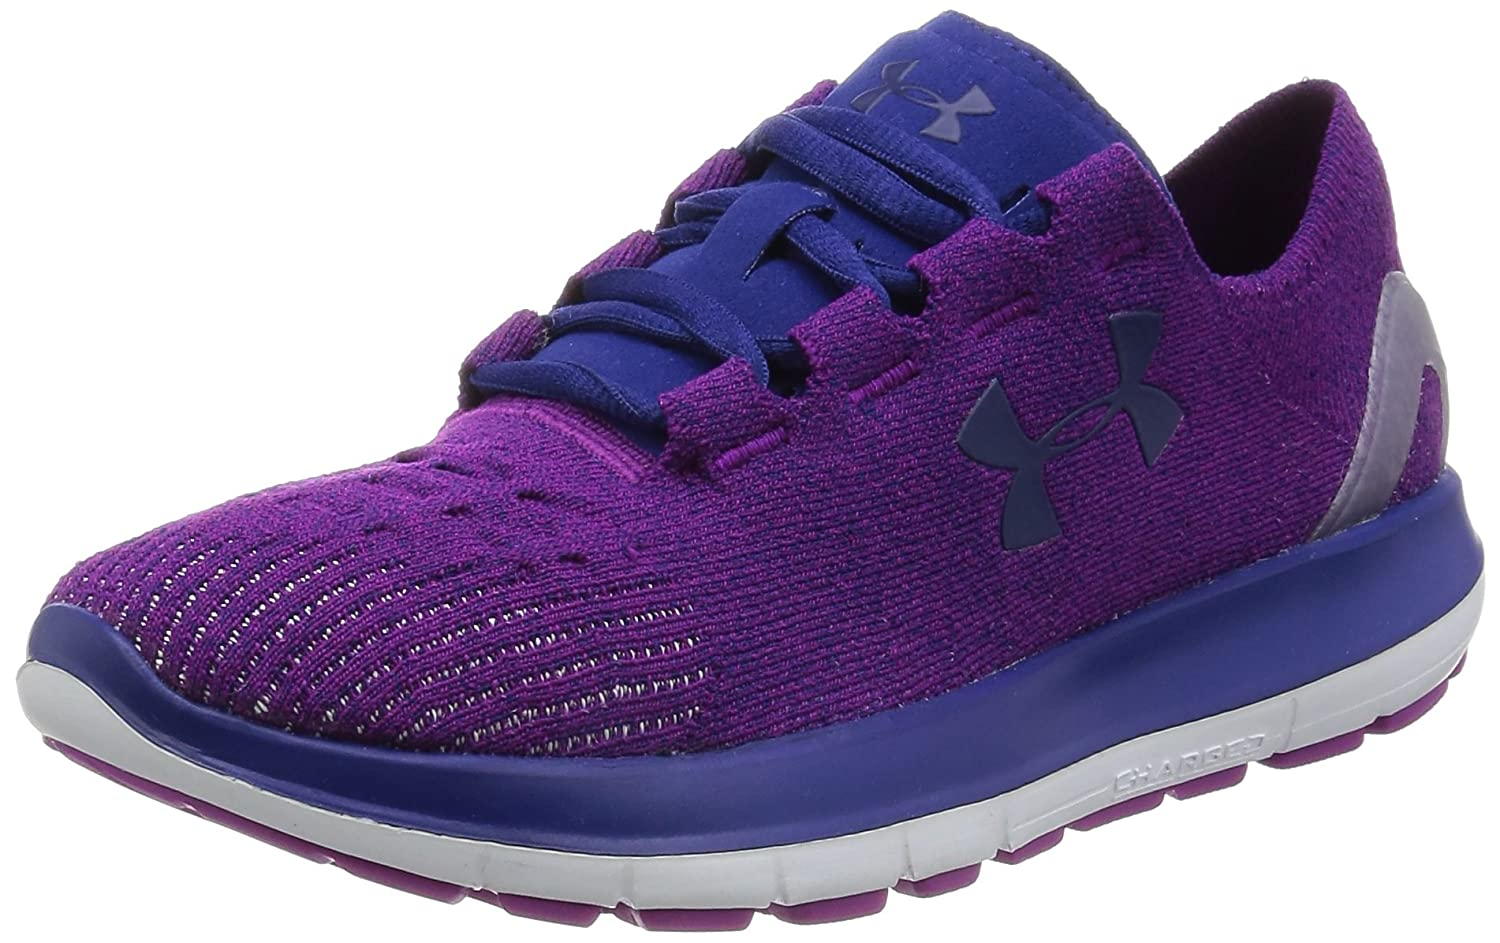 Under Armour Women's Speedform Slingride Tri Running Shoe, Overcast Gray/Glacier Gray/Marlin Blue B018EZUCQ4 7.5 B(M) US|Purple Lights/ White/ Caspian